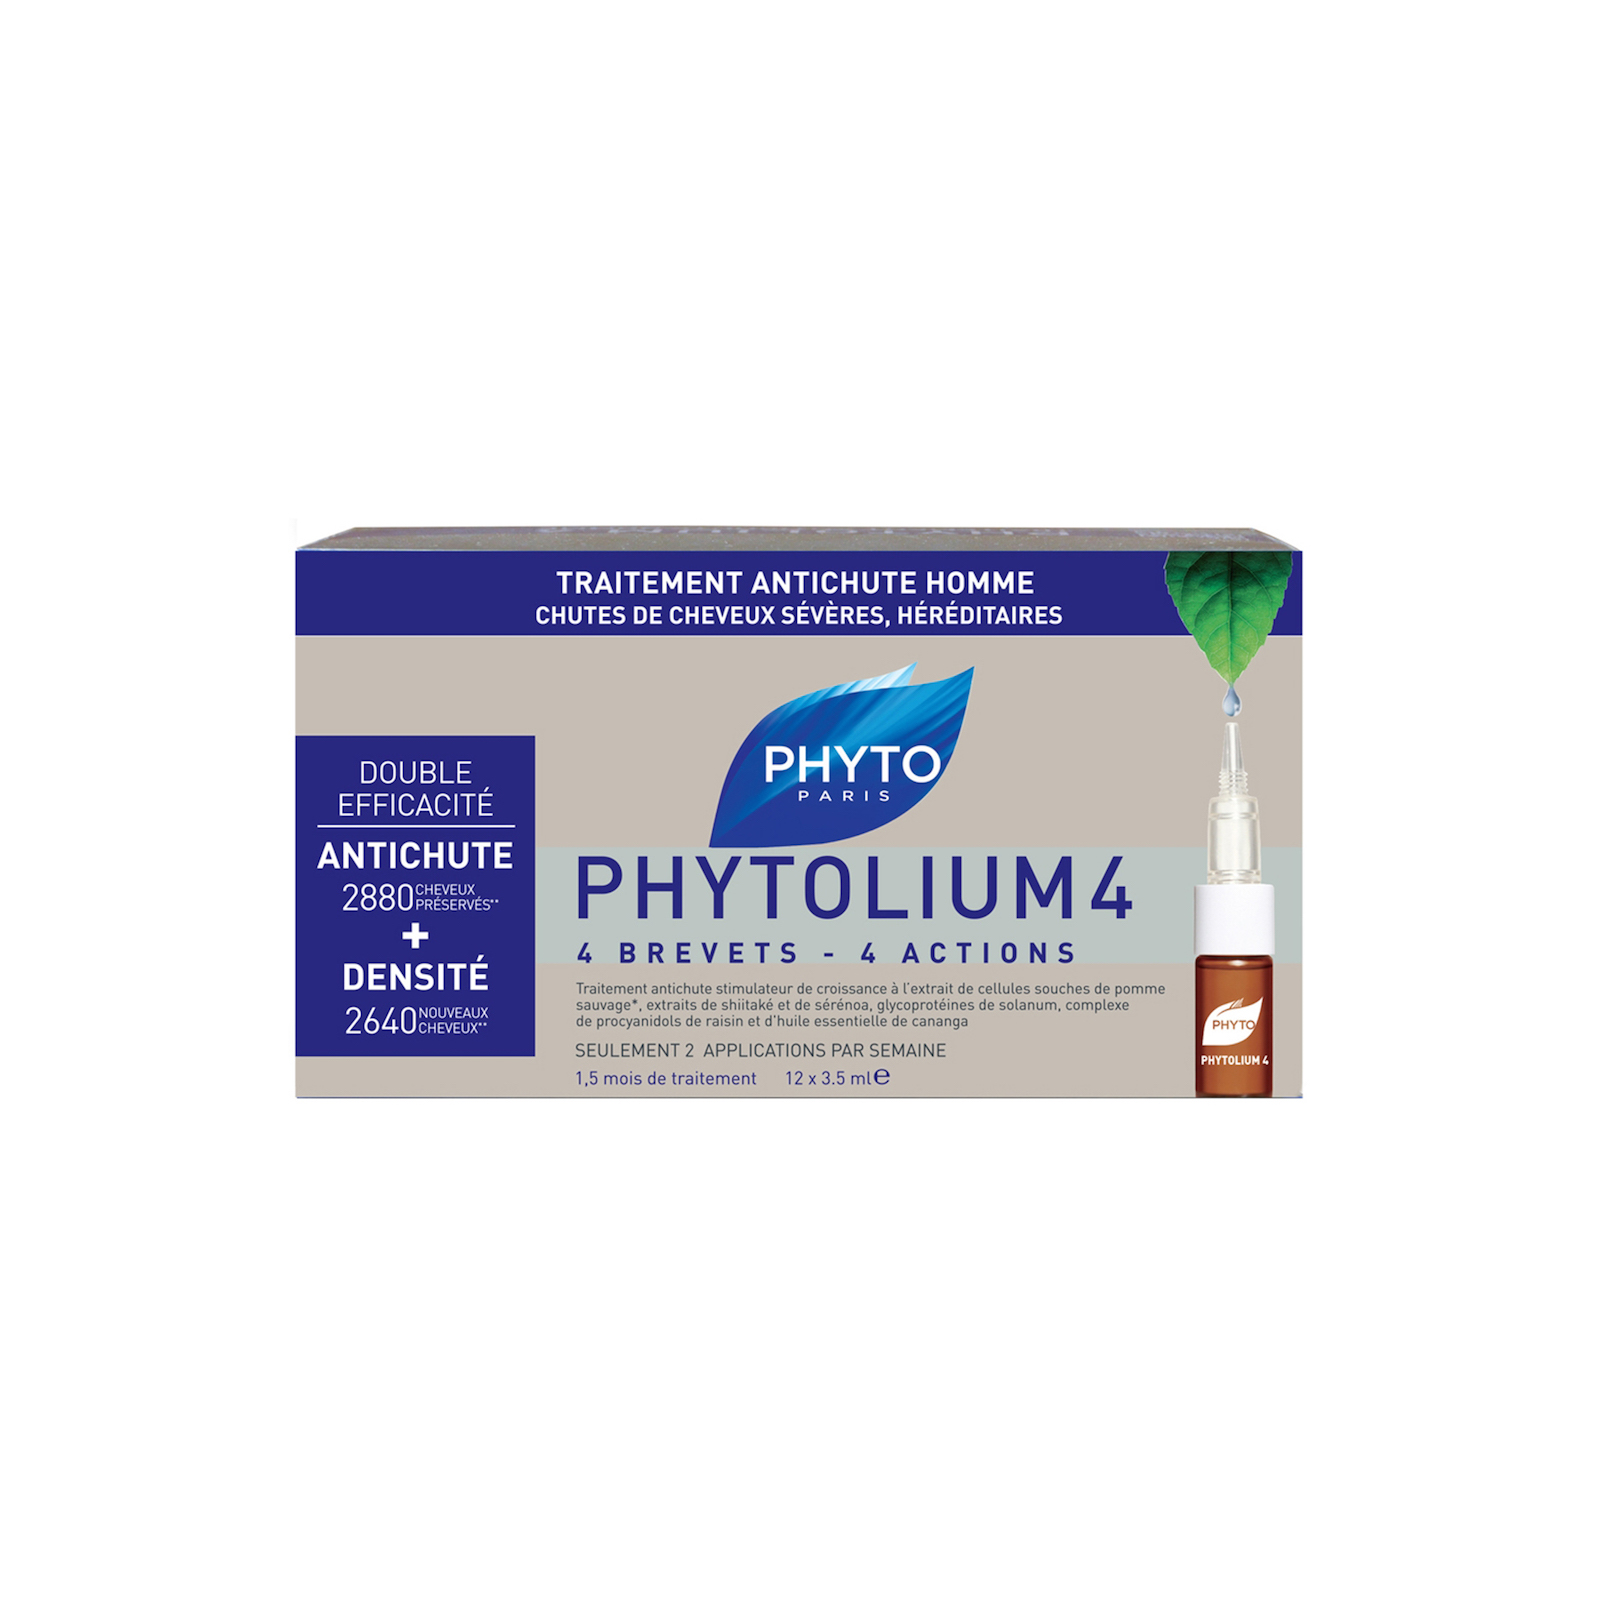 Phyto Phytolium 4 Anti-Hair Loss Concentrate With Botanical Stem Cells (88 percent Efficacy) -  12x3.5ml